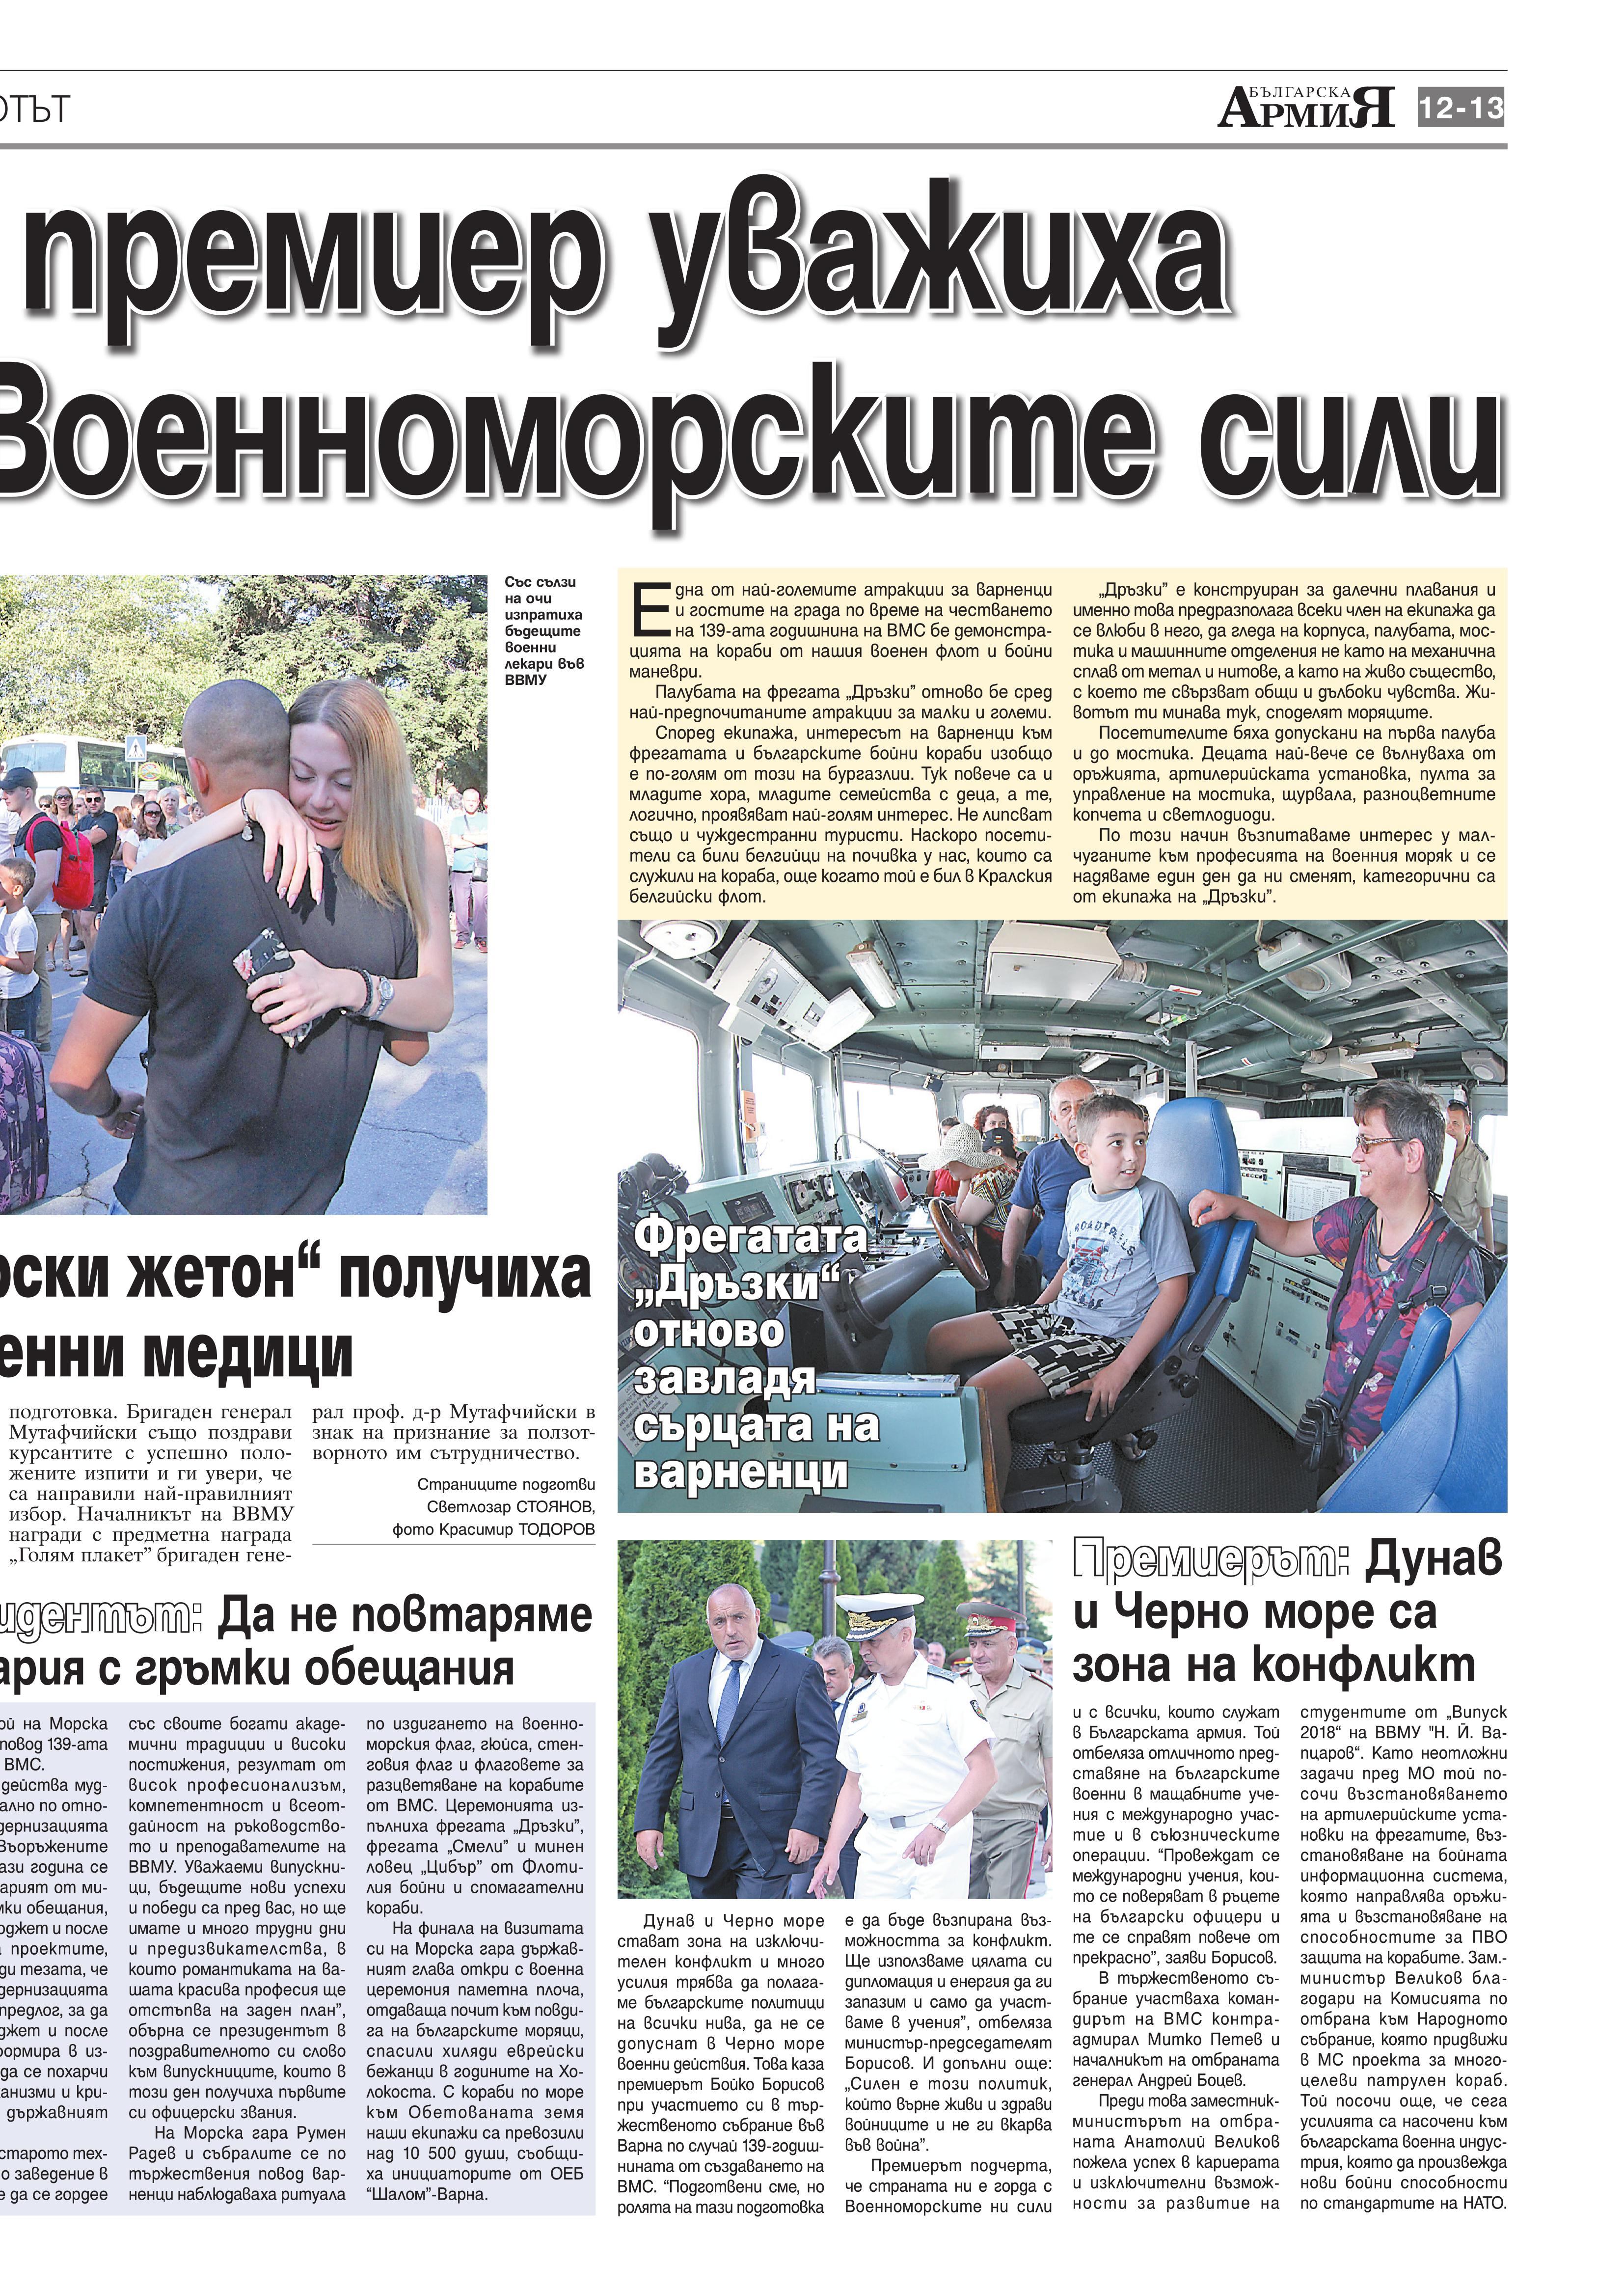 https://armymedia.bg/wp-content/uploads/2015/06/13.page1_-62.jpg